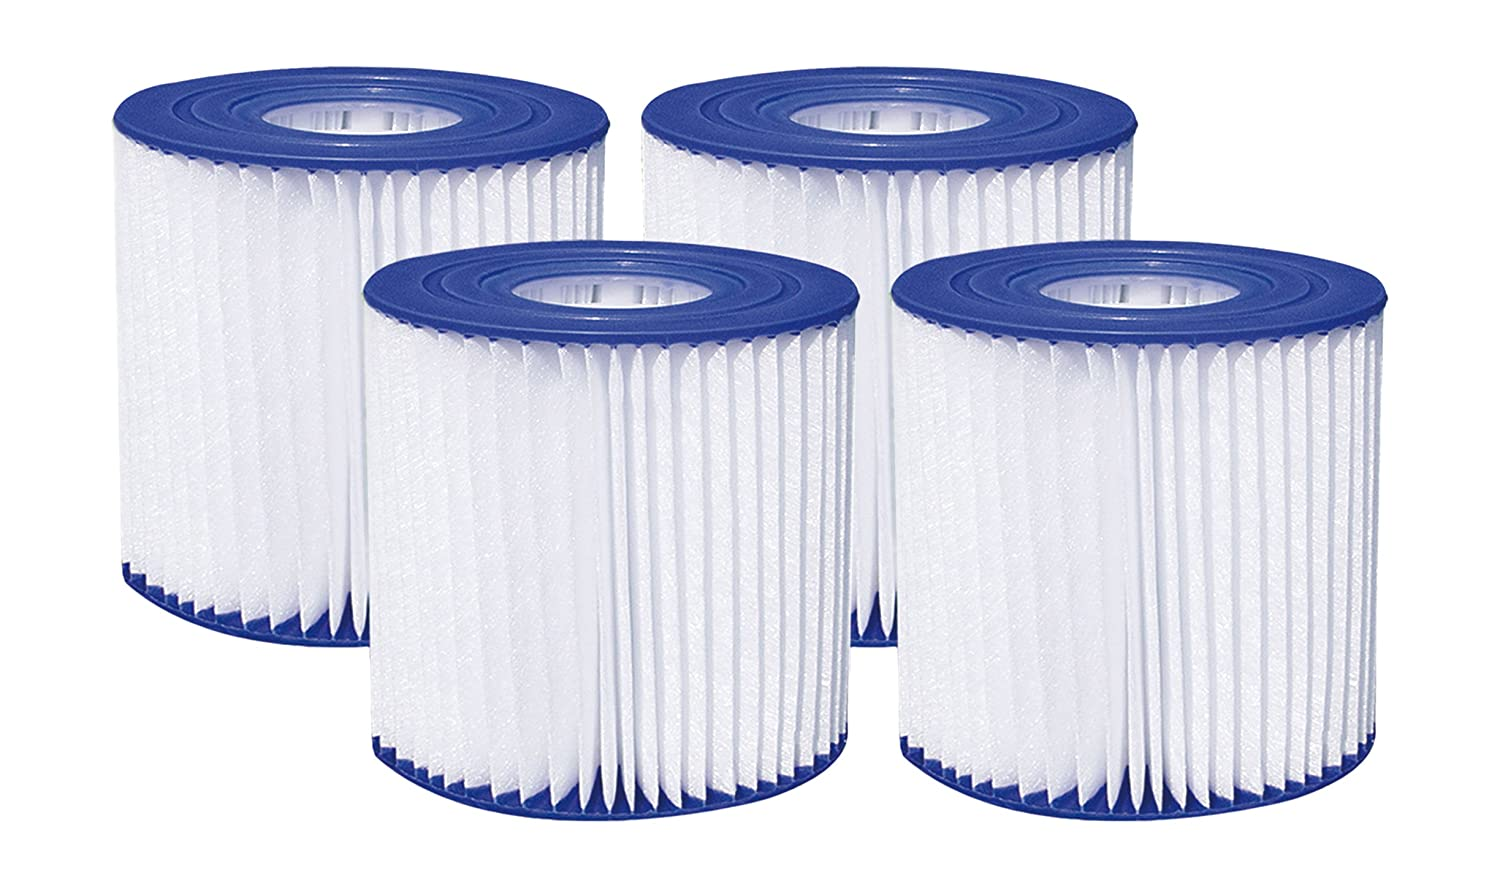 "Summer Waves 4.13"" x 3.75"" Type D Filter Cartridge (4 Pack) P57000104156"